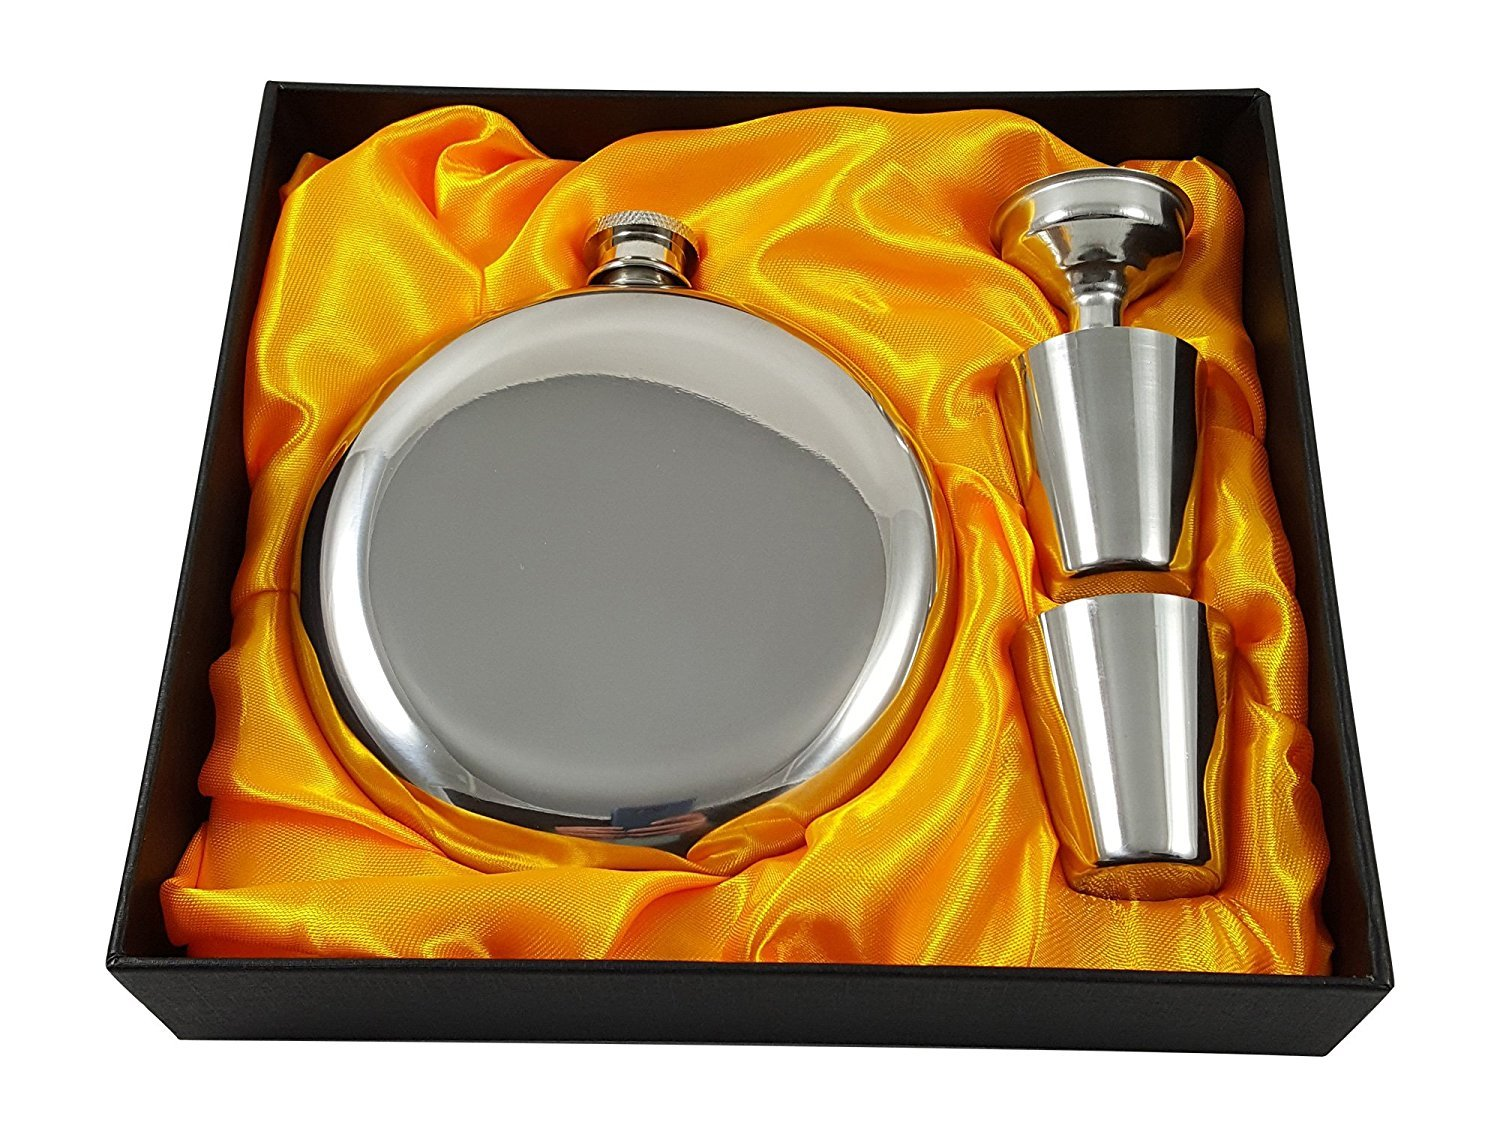 5 oz Round Flask Gift Set with Two Shot Glasses and Funnel in a Black Gift Box Palm City Products PC-RF05S